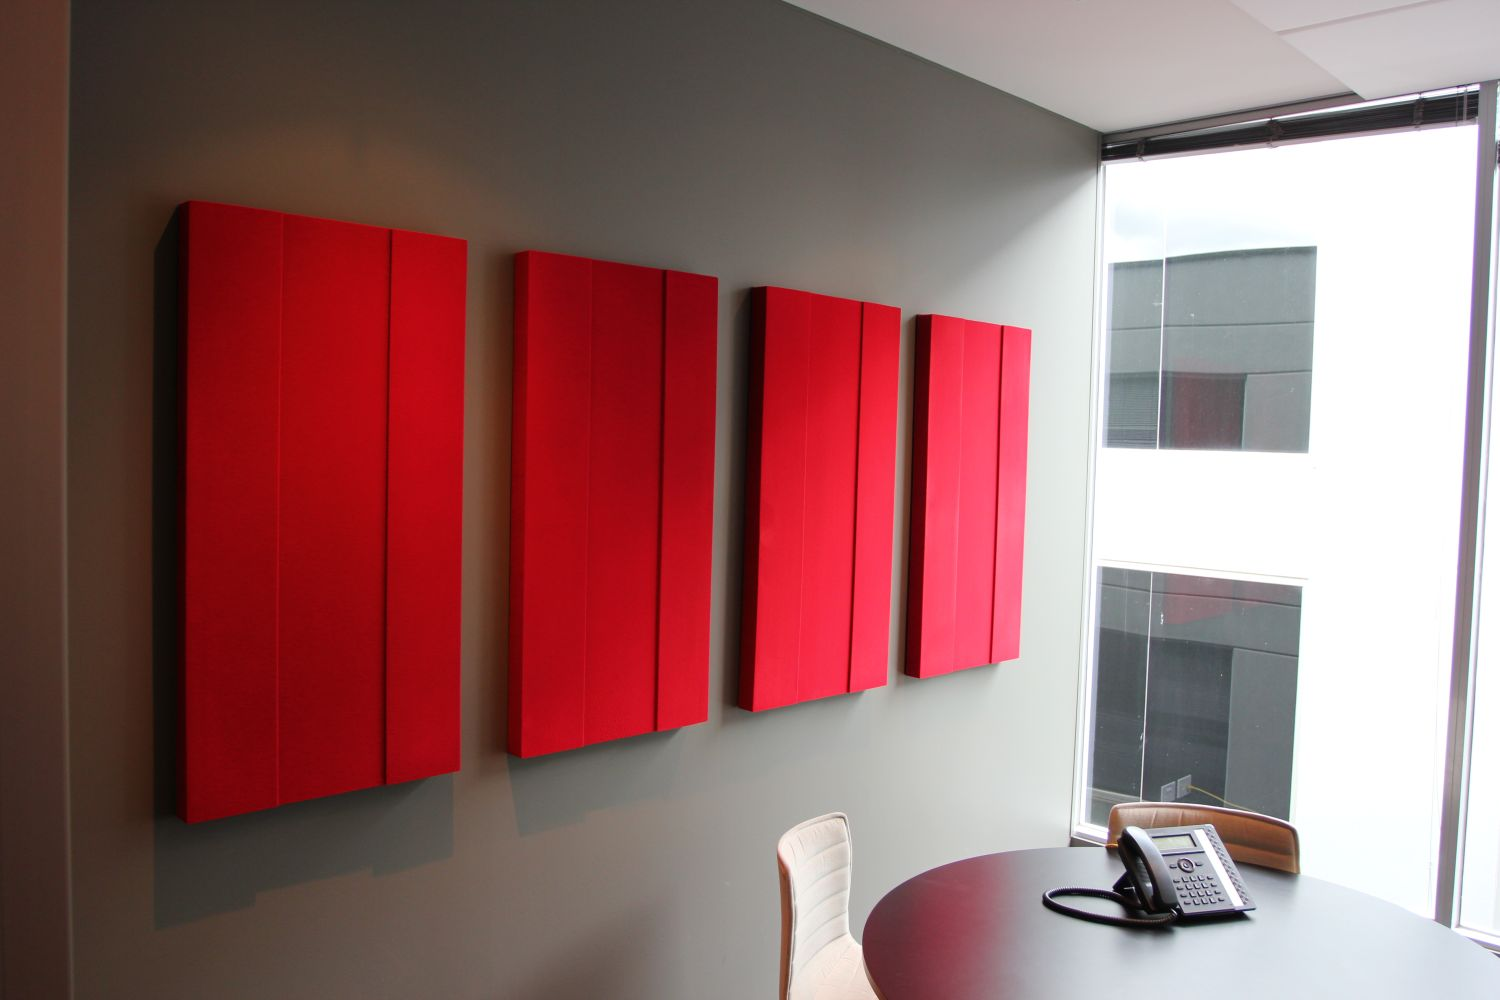 How Do Decorative Acoustic Panels Impact Room Acoustics?